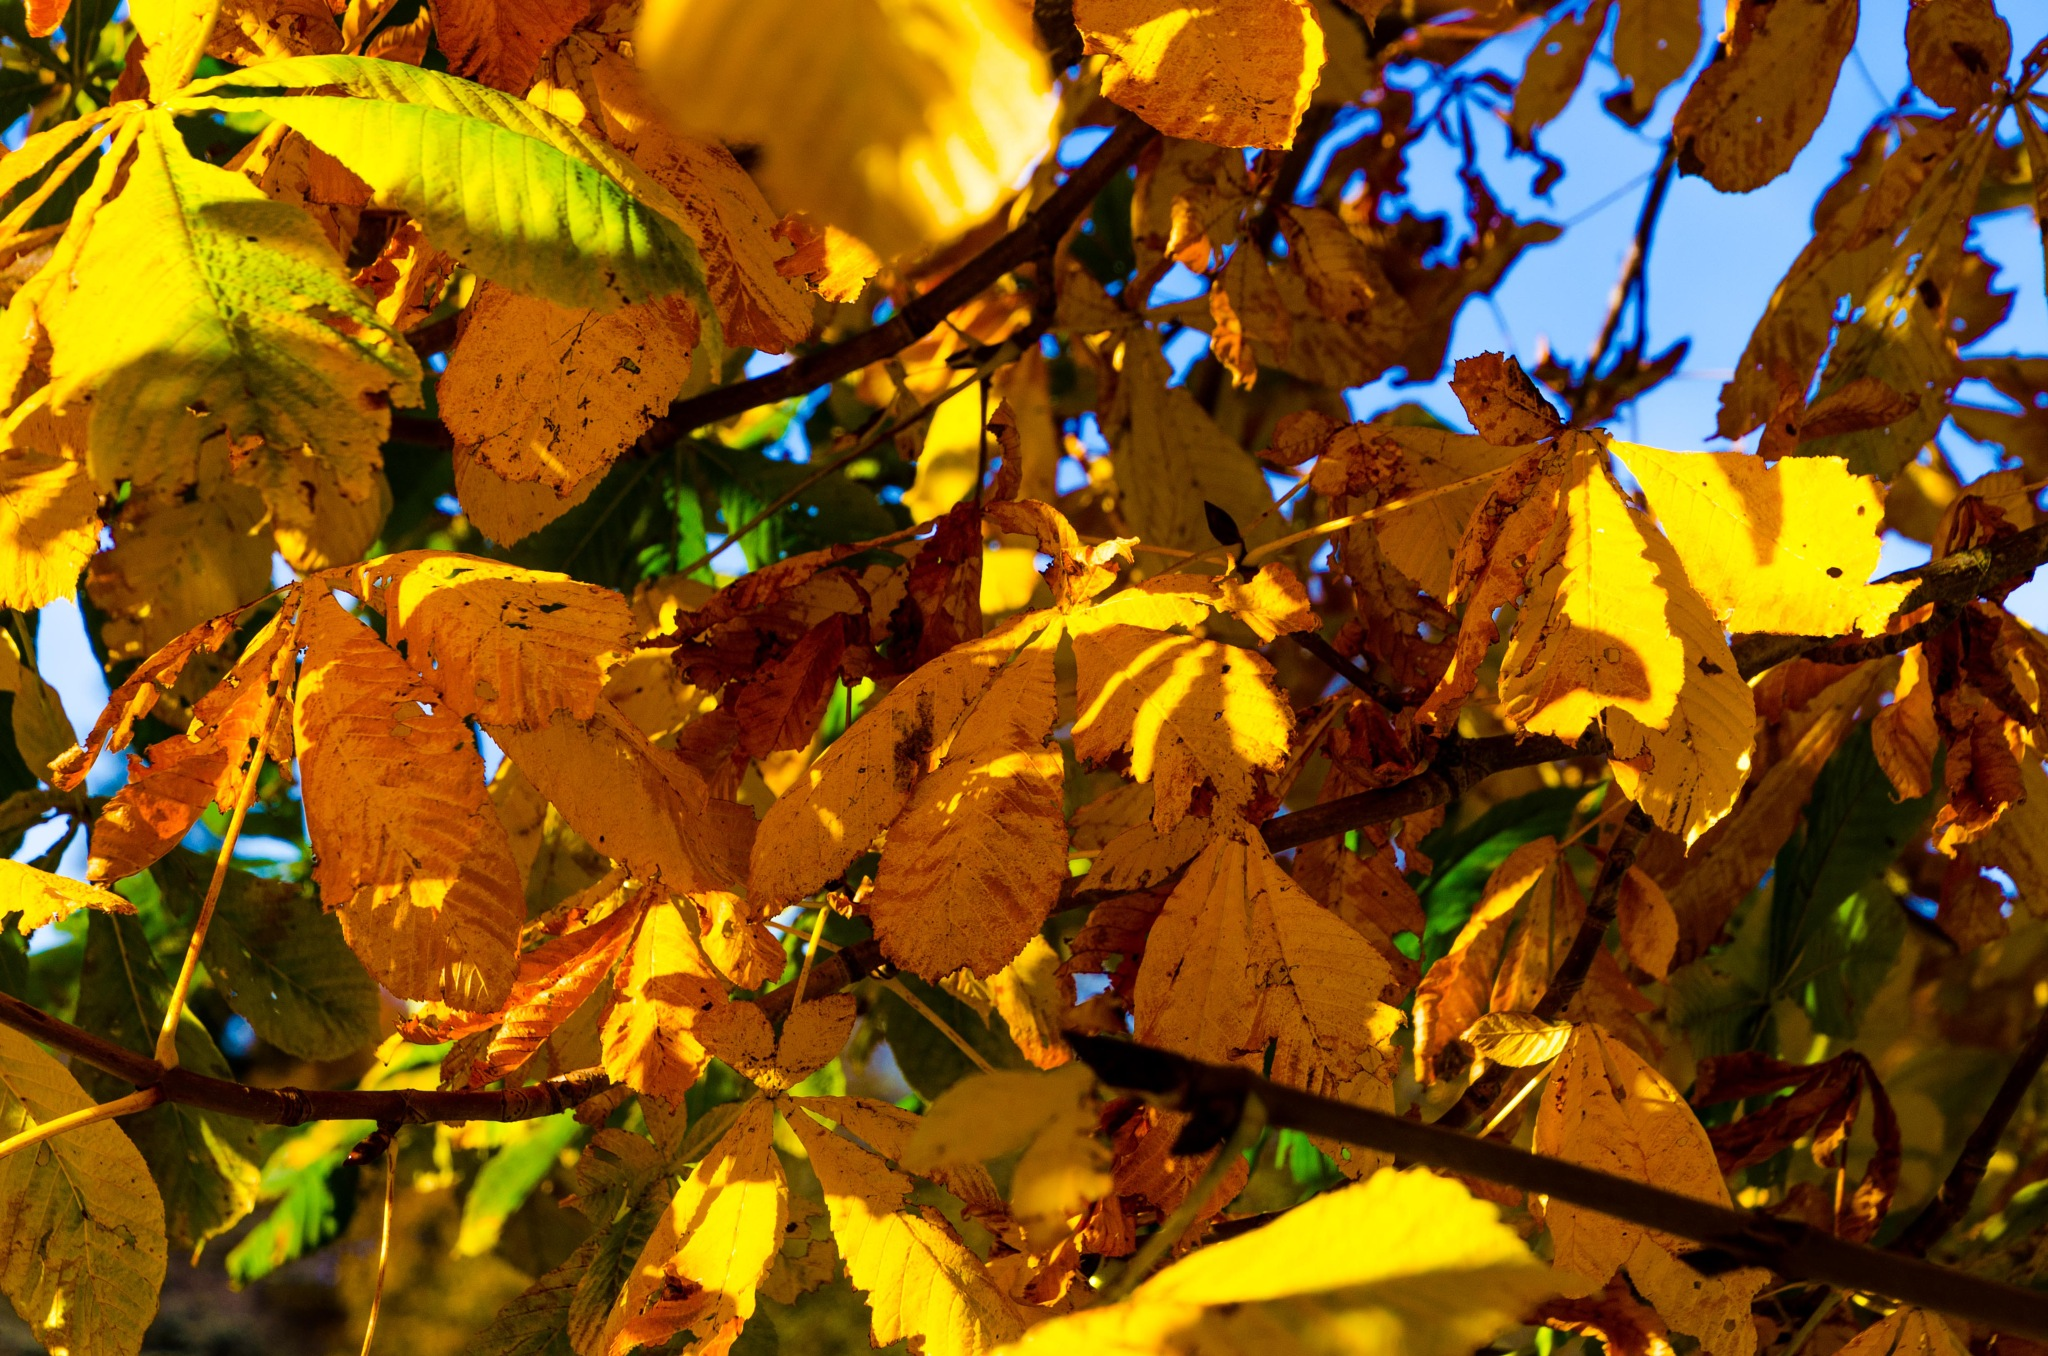 Leaves in autumn colors by Johnny Lythell